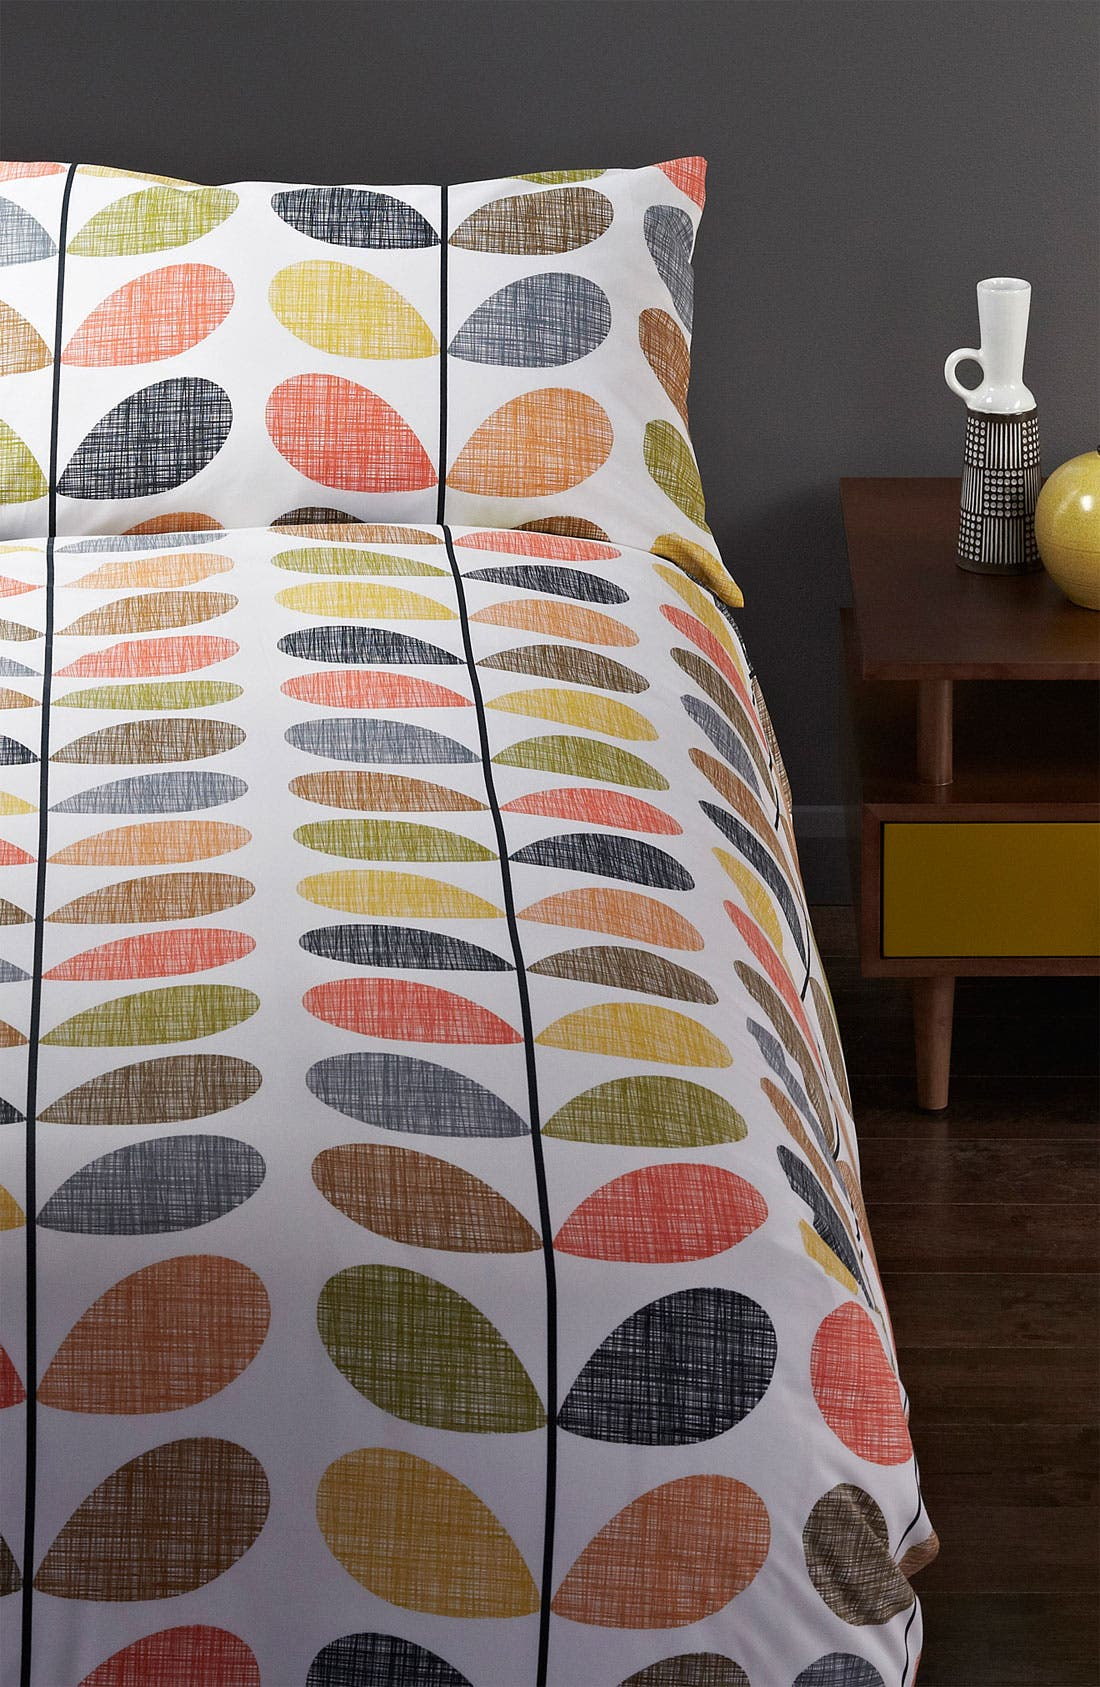 Alternate Image 1 Selected - Orla Kiely 'Scribble Stem' Duvet Cover & Shams